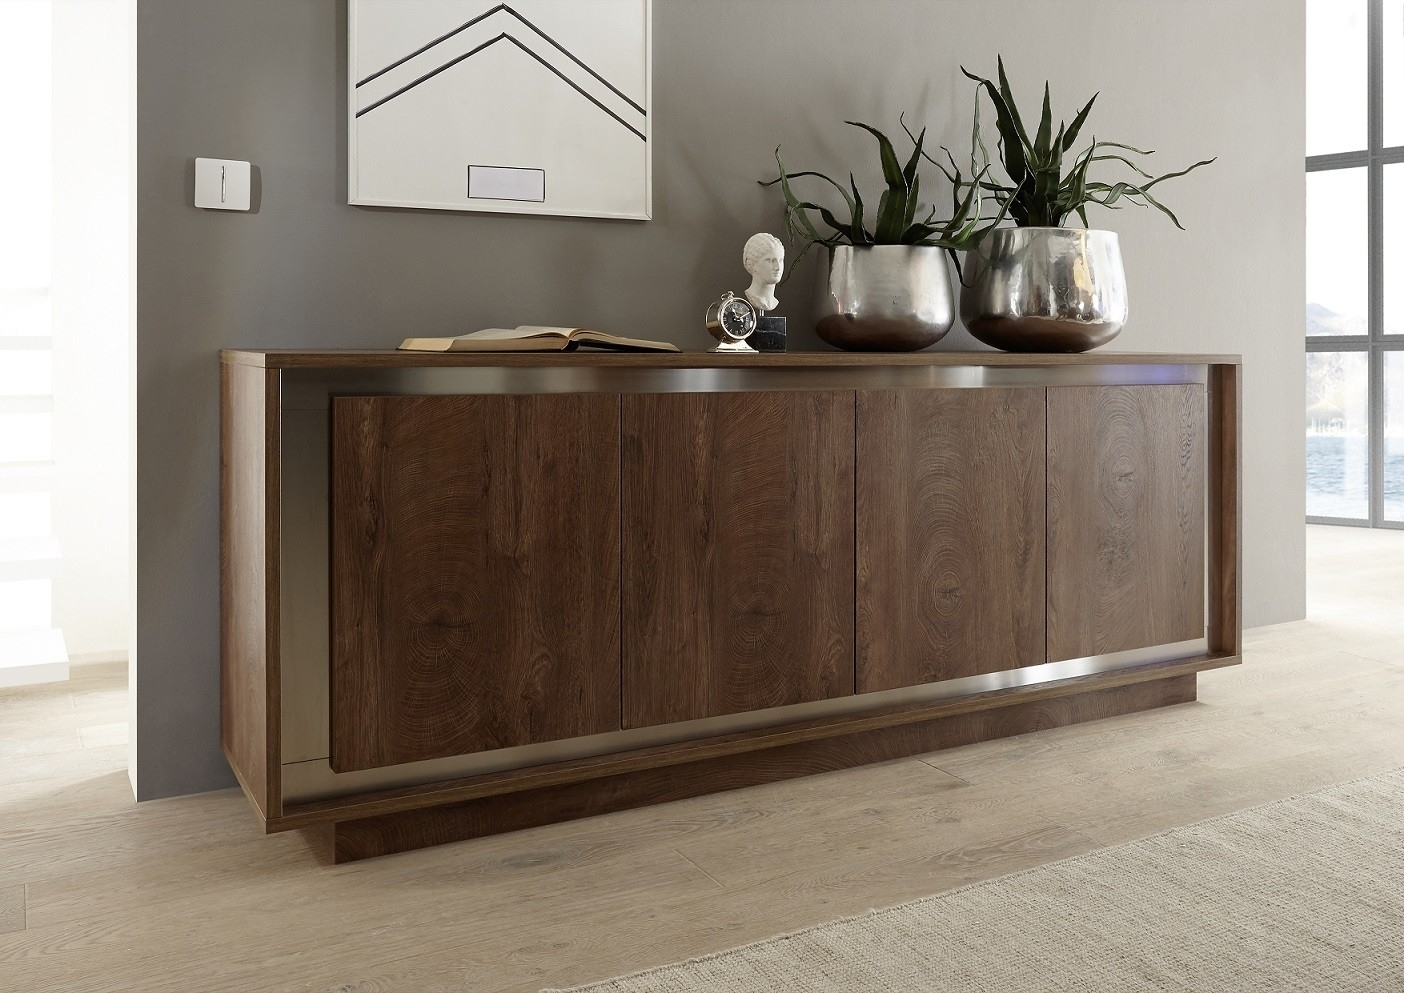 Modern Sideboards Uk (82) - Sena Home Furniture throughout Walnut Finish Contempo Sideboards (Image 23 of 30)